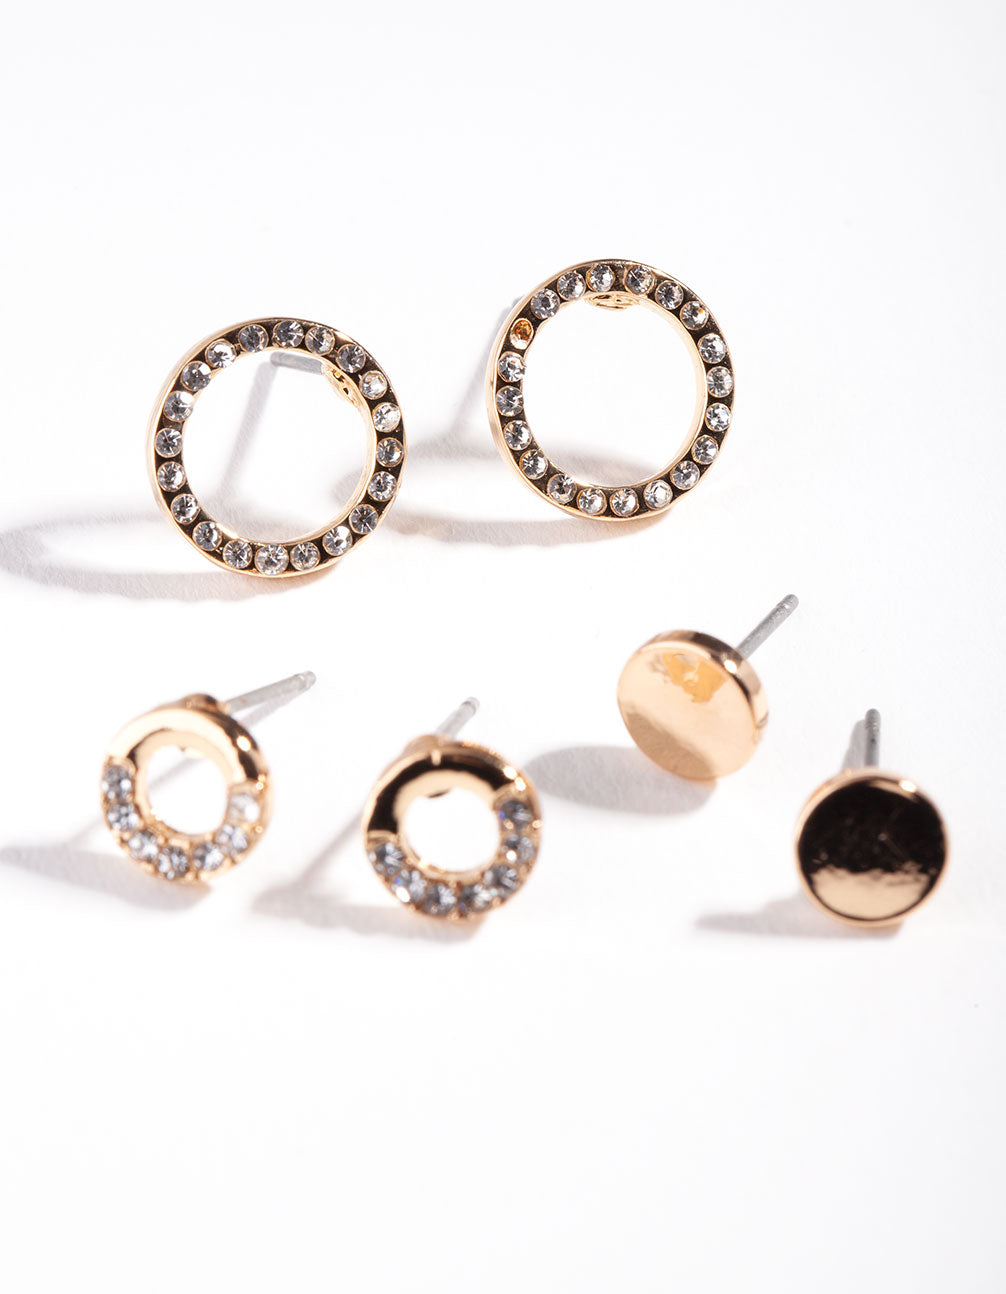 Gold Pave Circle Mix Stud Earring 3 Pack